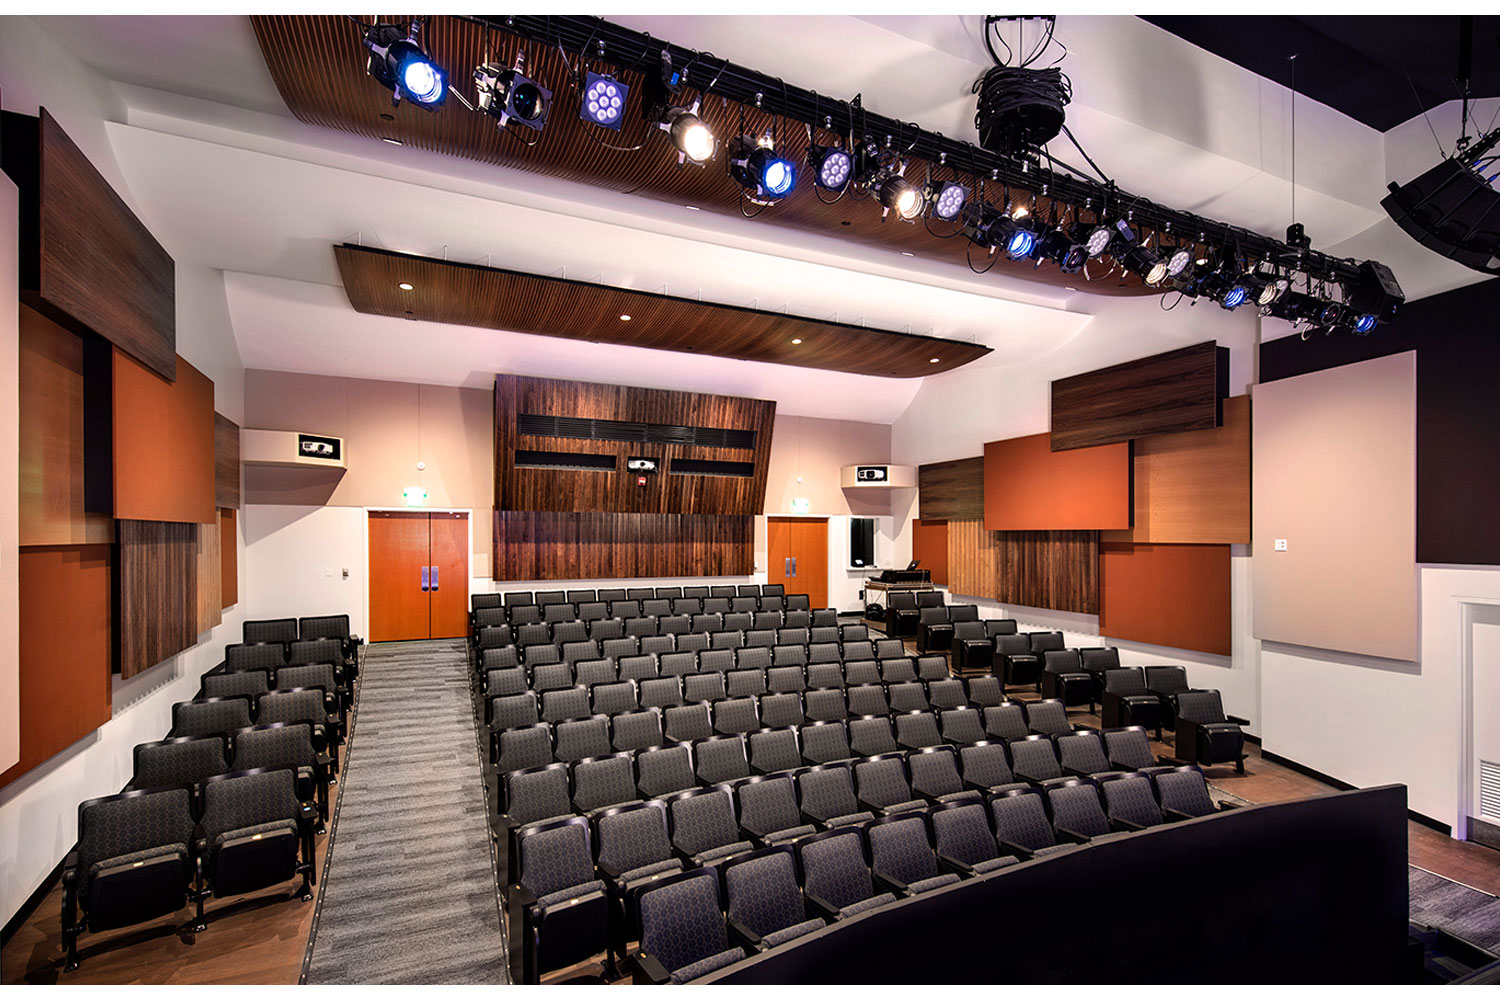 The Herb Alpert Foundation engaged WSDG to design the acoustics for a small on-campus live performance theater at the prestigious UCLA, with help of Lani Hall. Theater back view.